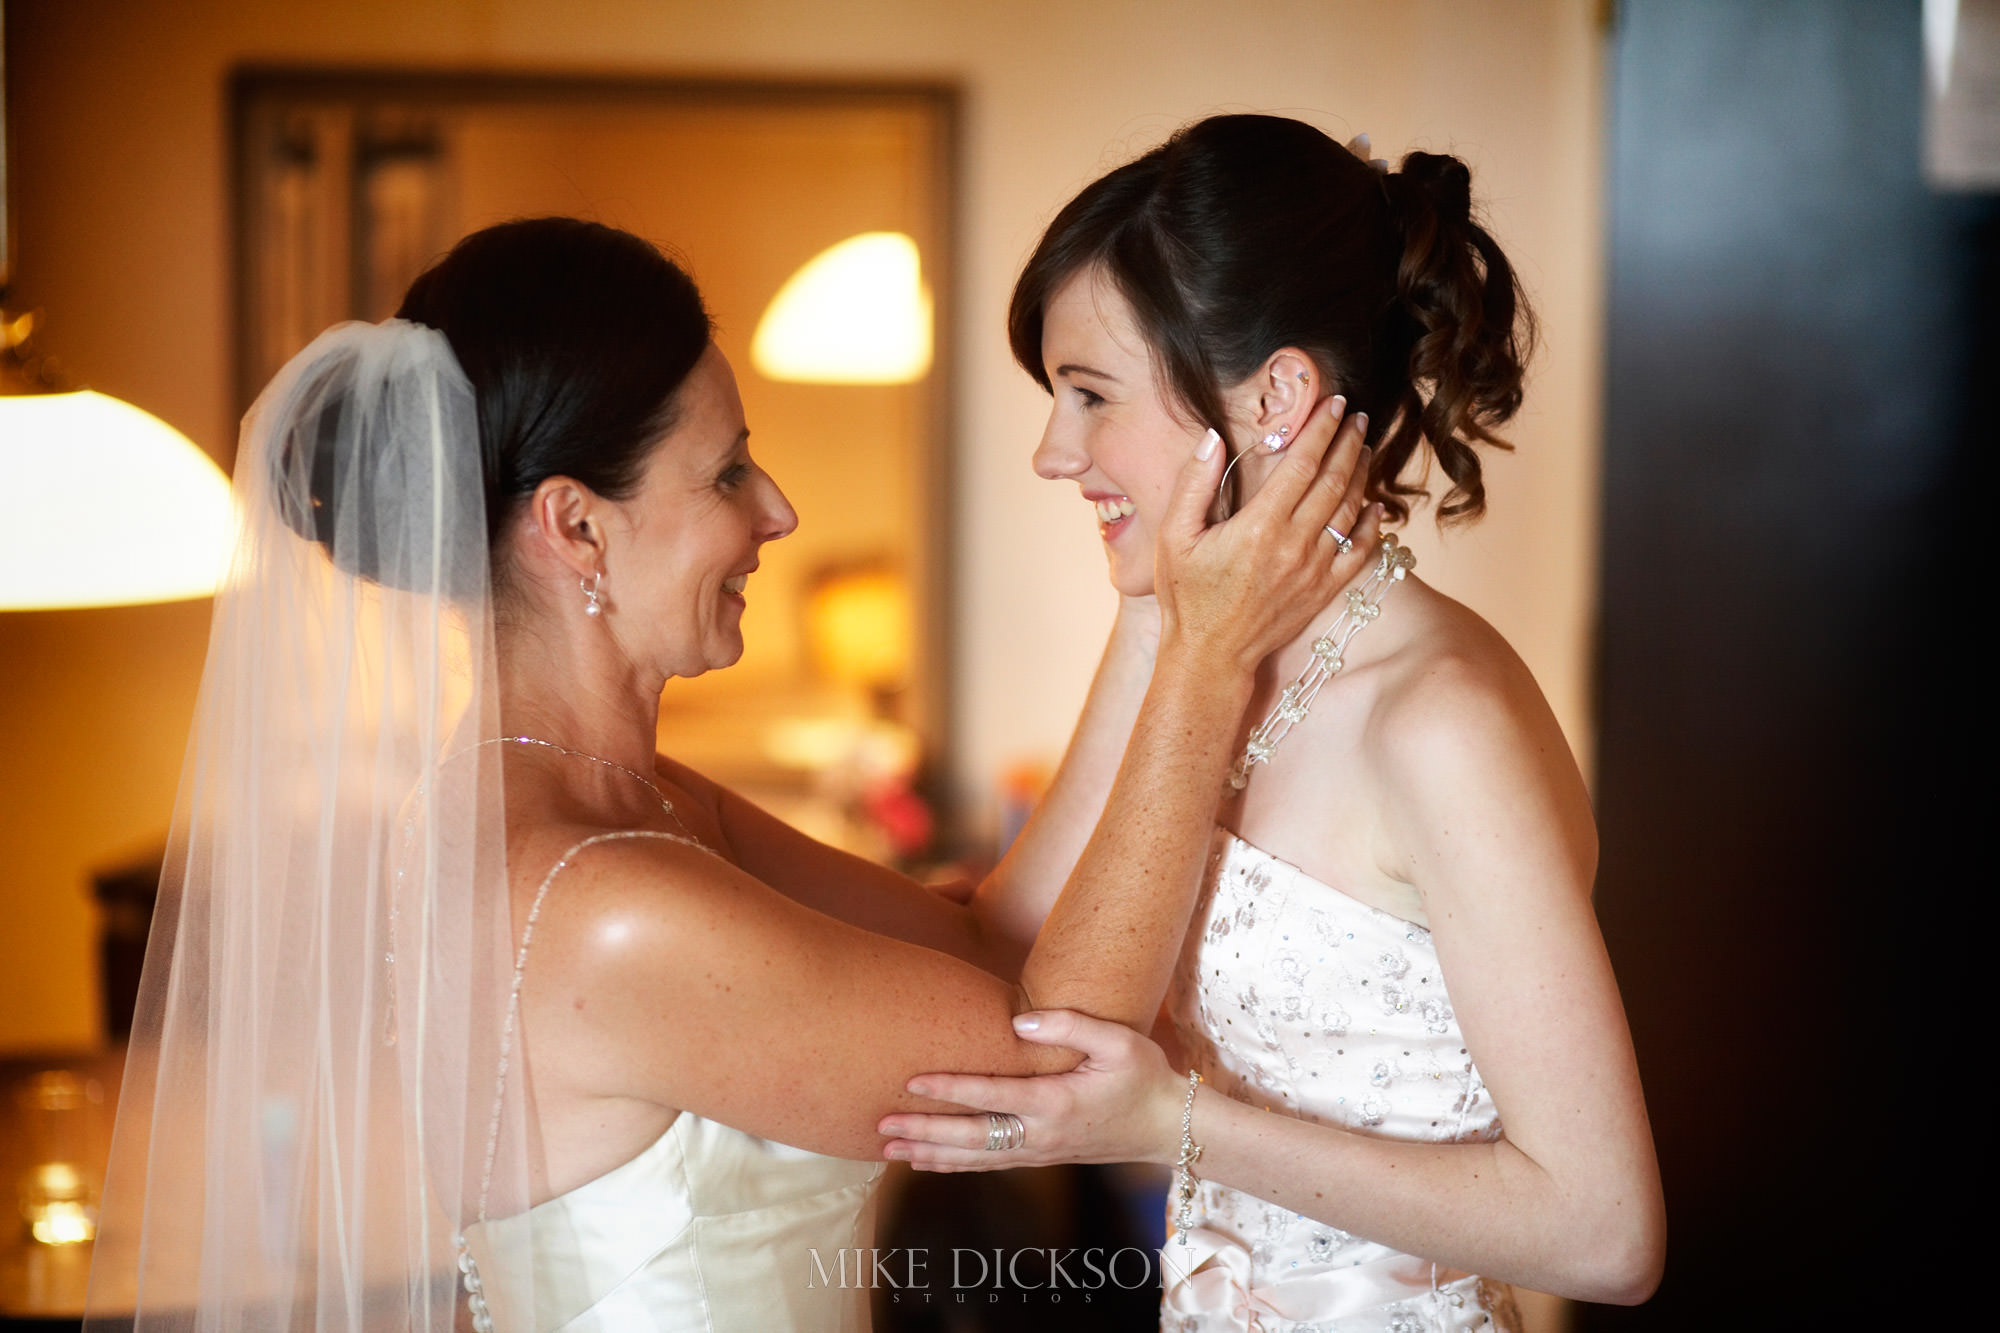 Les Suites, Ontario, Ottawa, Summer, Wedding, © Mike Dickson